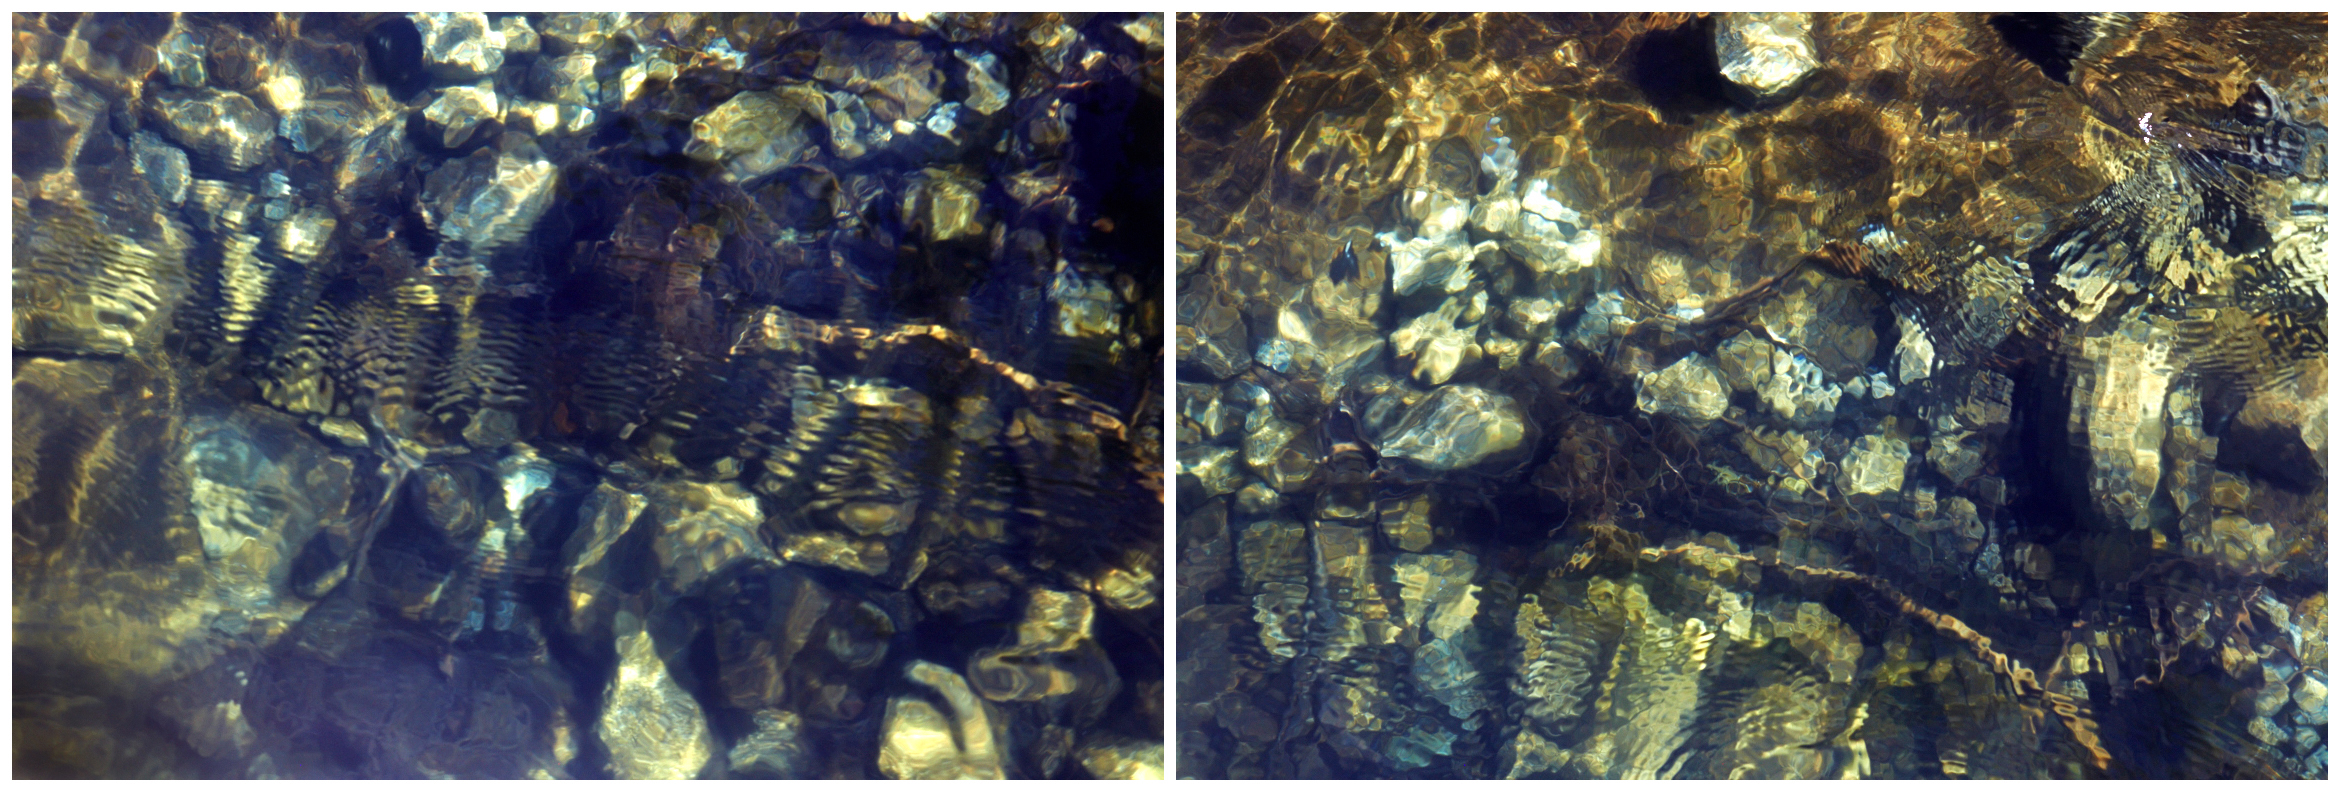 RIVER ROCK DYPTYCH.jpg